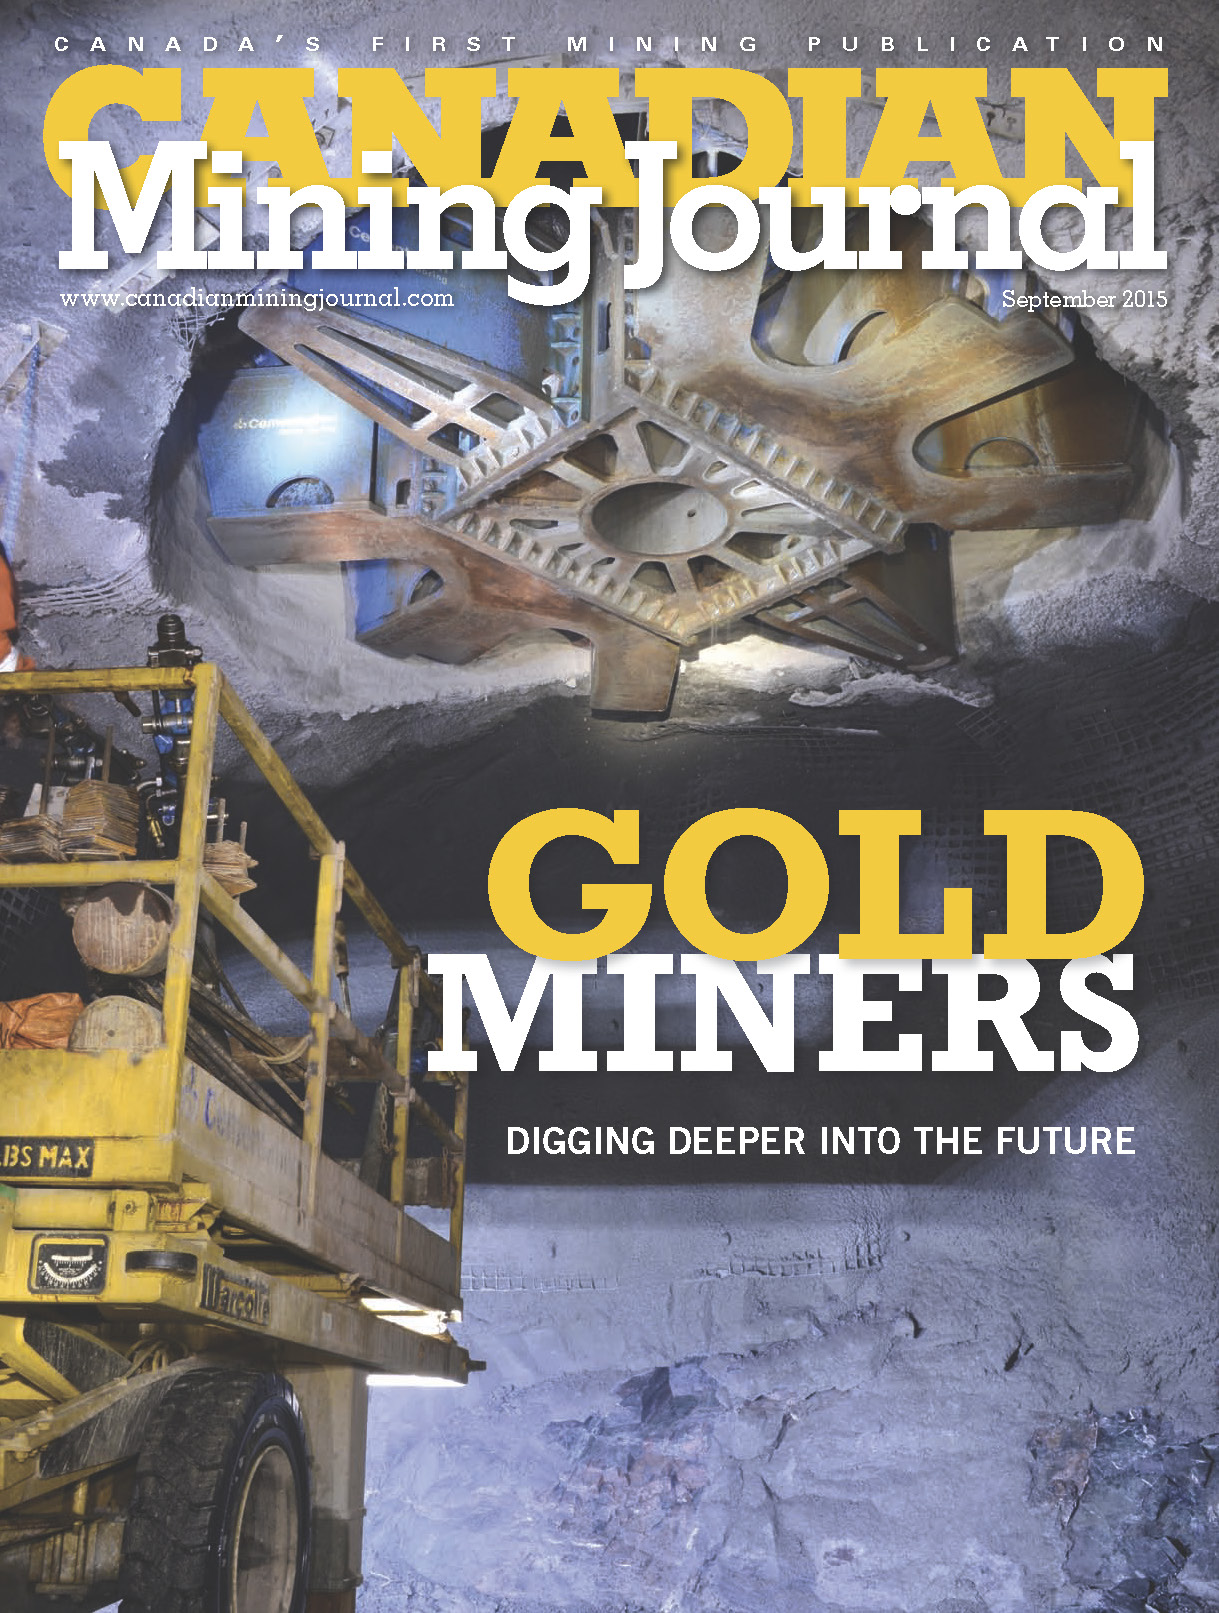 Canadian Mining Journal - Septiembre 2015_Page_01